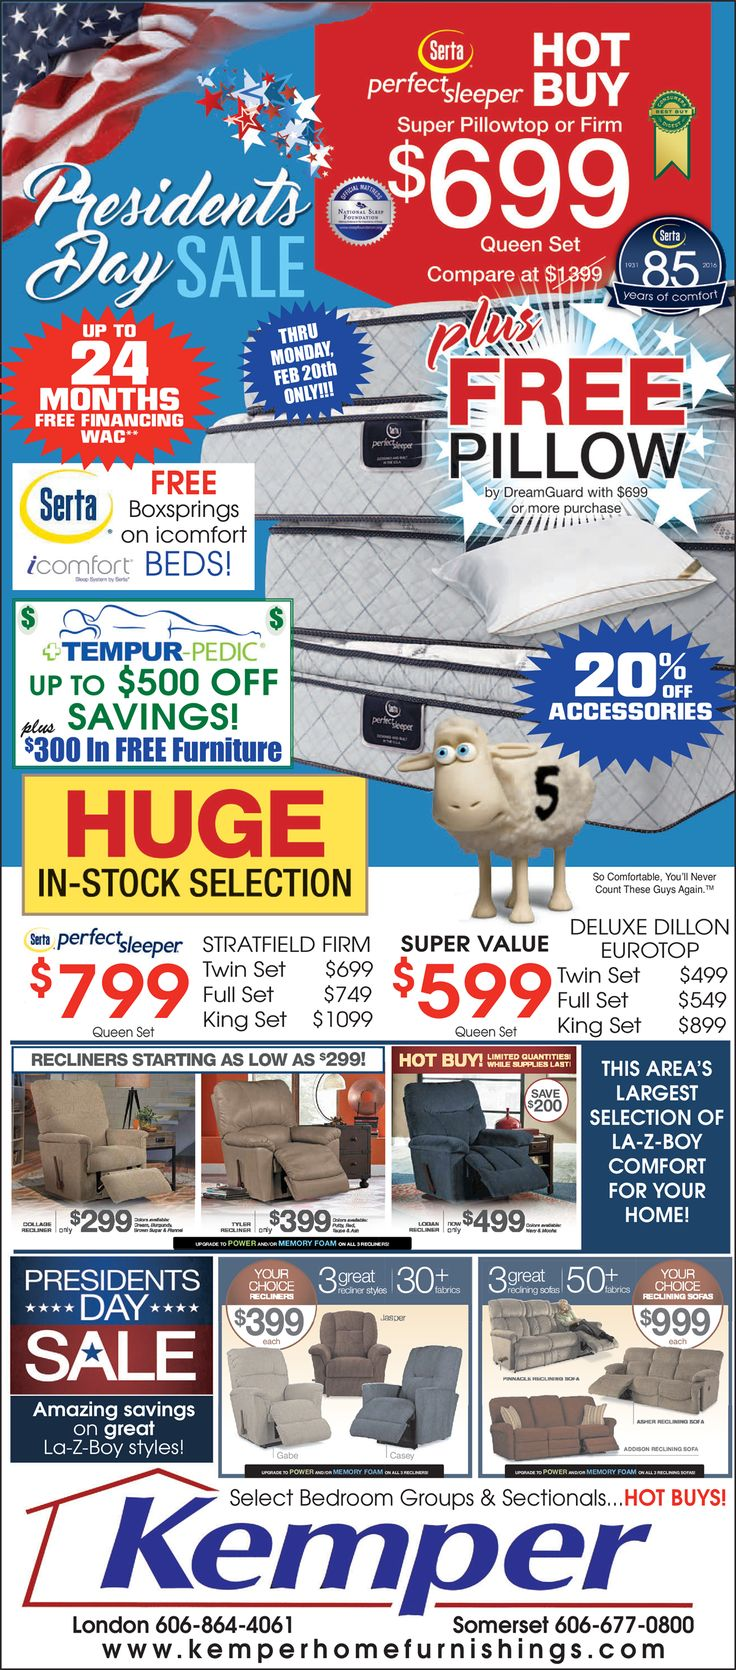 TODAY ONLY!!! Up to 24 months Interest FREE Financing, 20